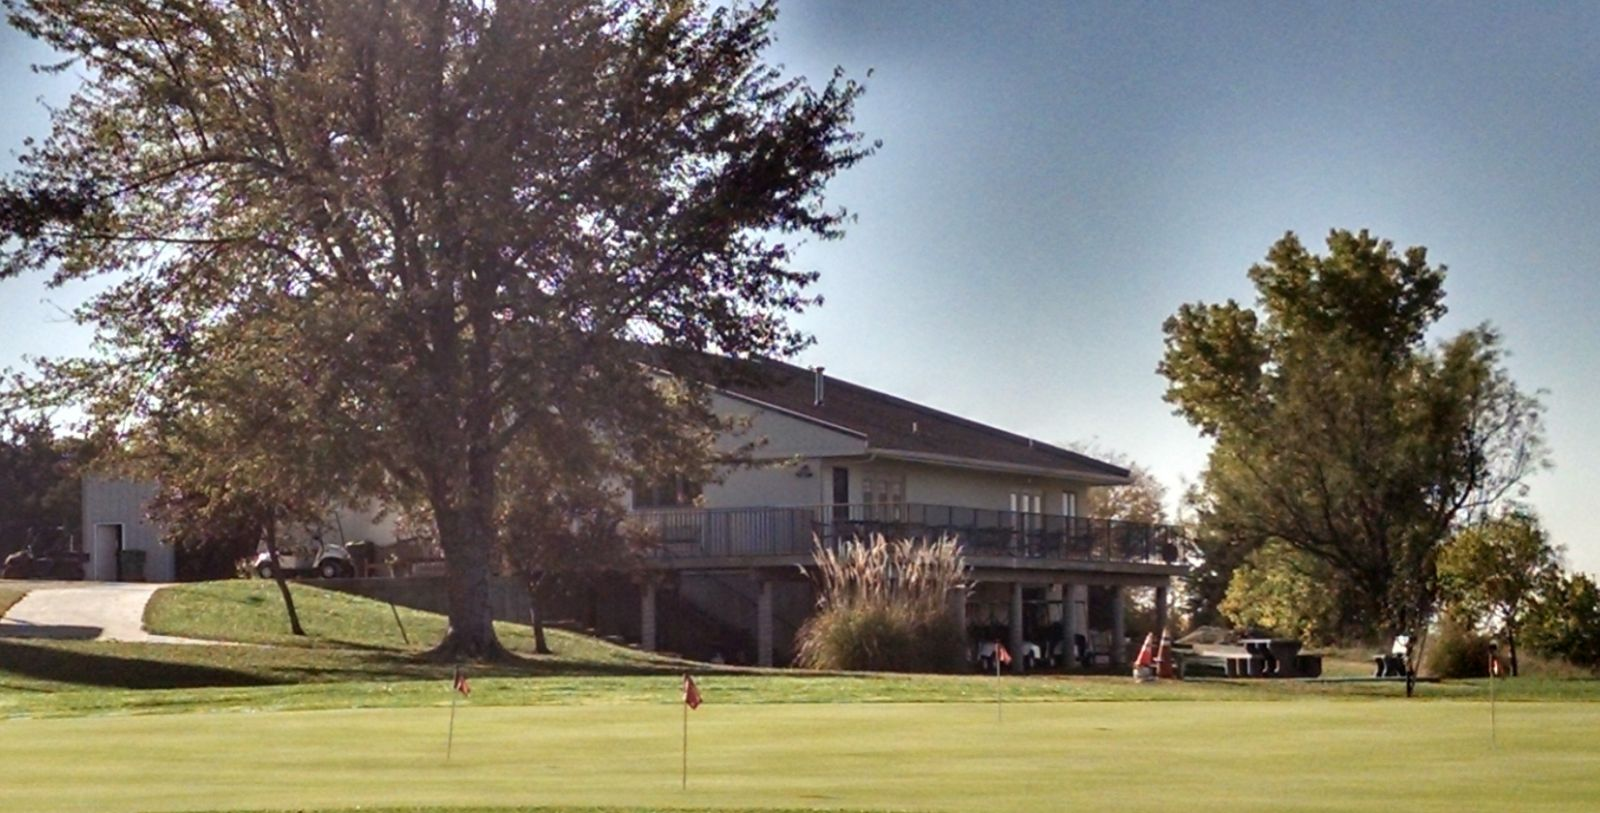 The clubhouse at Indian Hills Golf Course